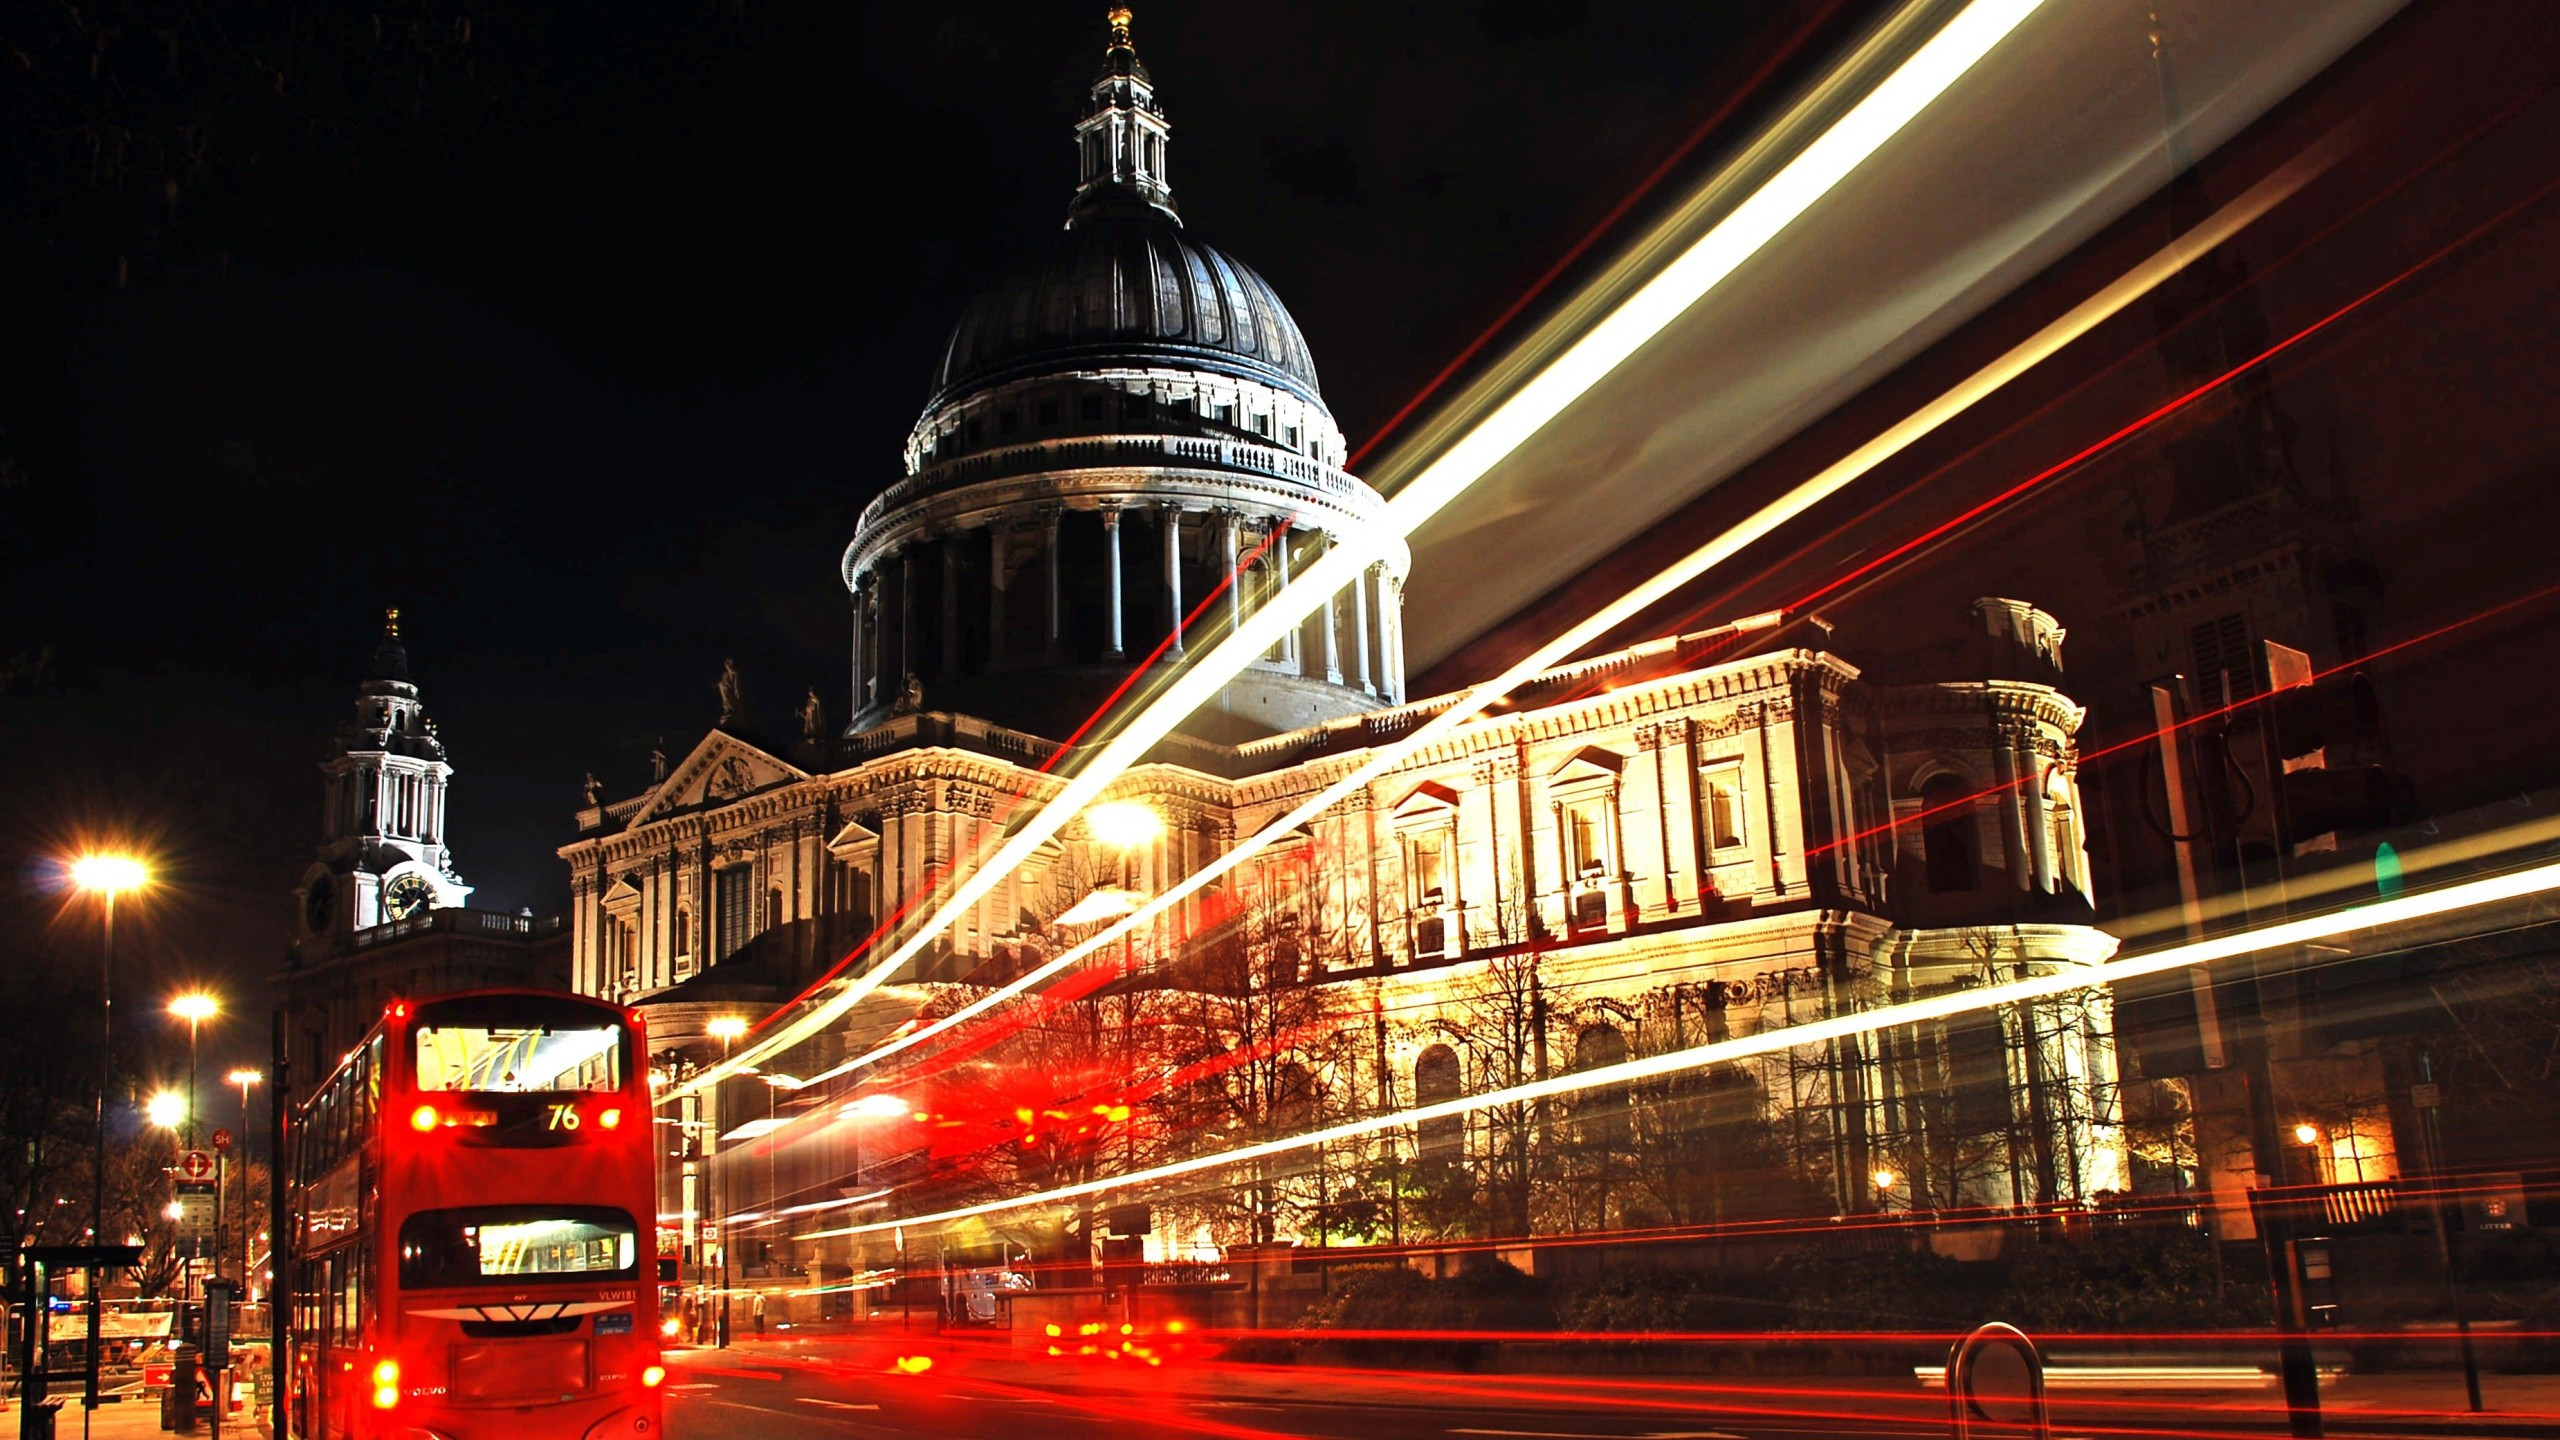 St. Paul's Cathedral at Night Wallpaper for Social Media YouTube Channel Art